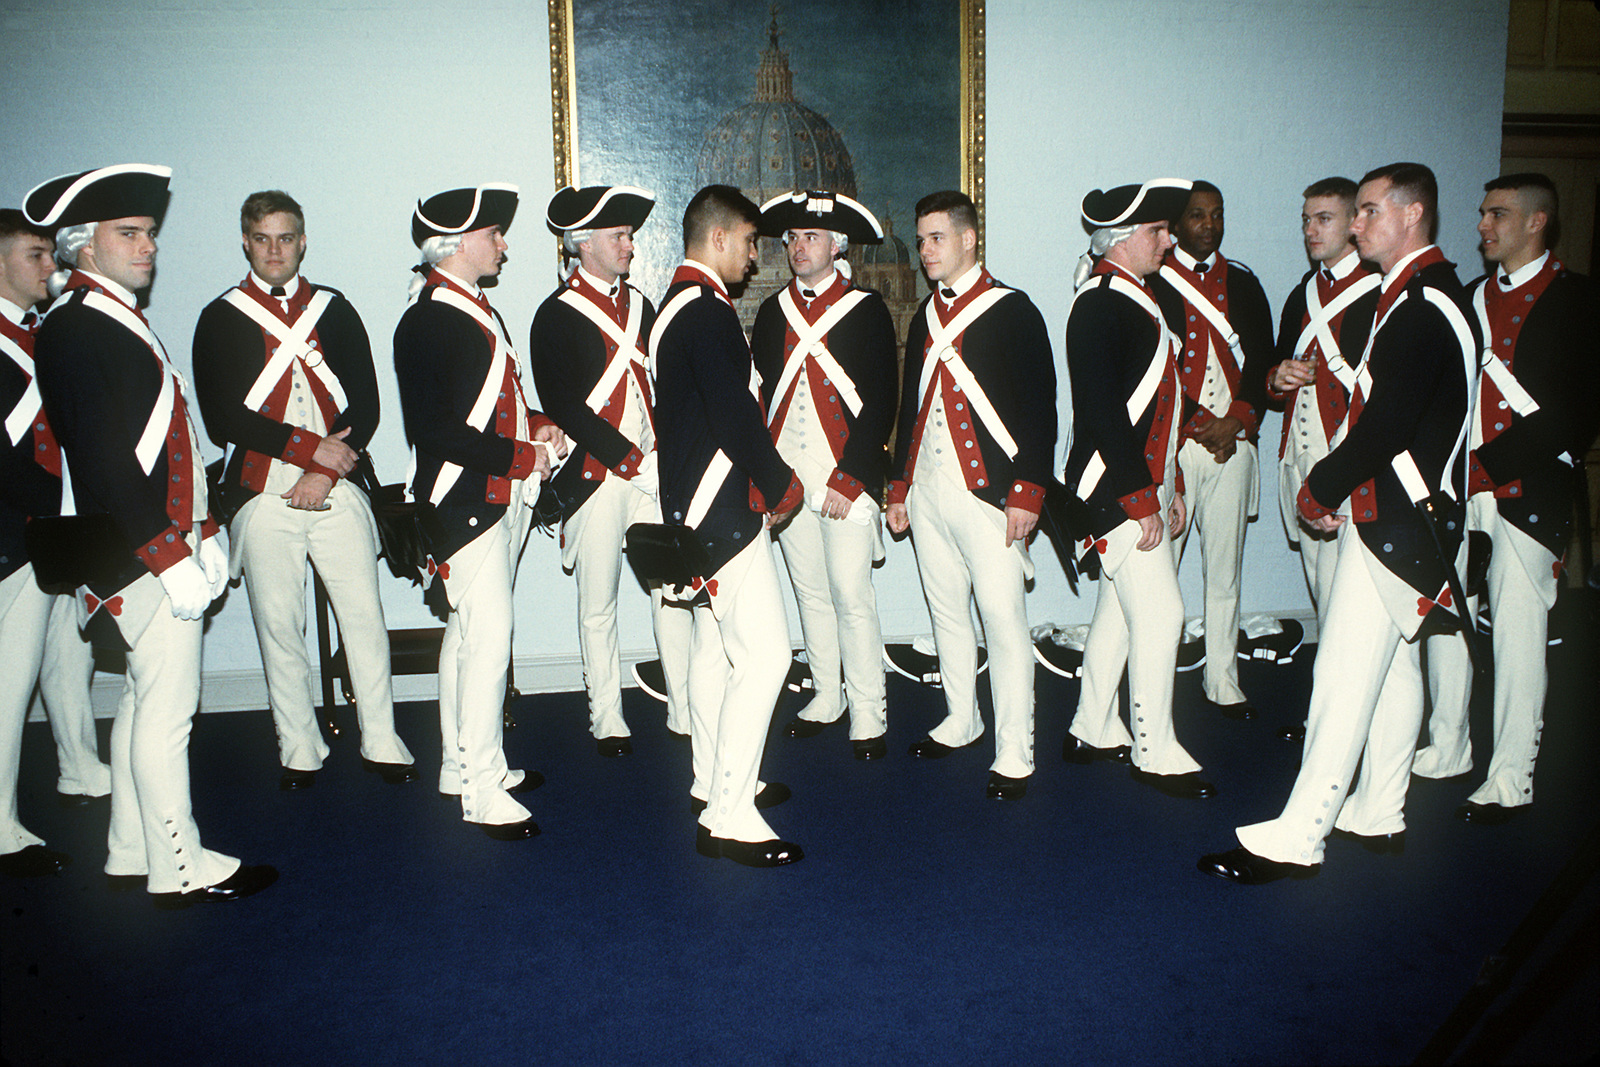 Diplomatic Reception. Various members of the Commander-in-CHIEF's Ceremonial Guard gather in a holding area prior to the Diplomatic Reception hosted by President-elect Clinton at Georgetown University